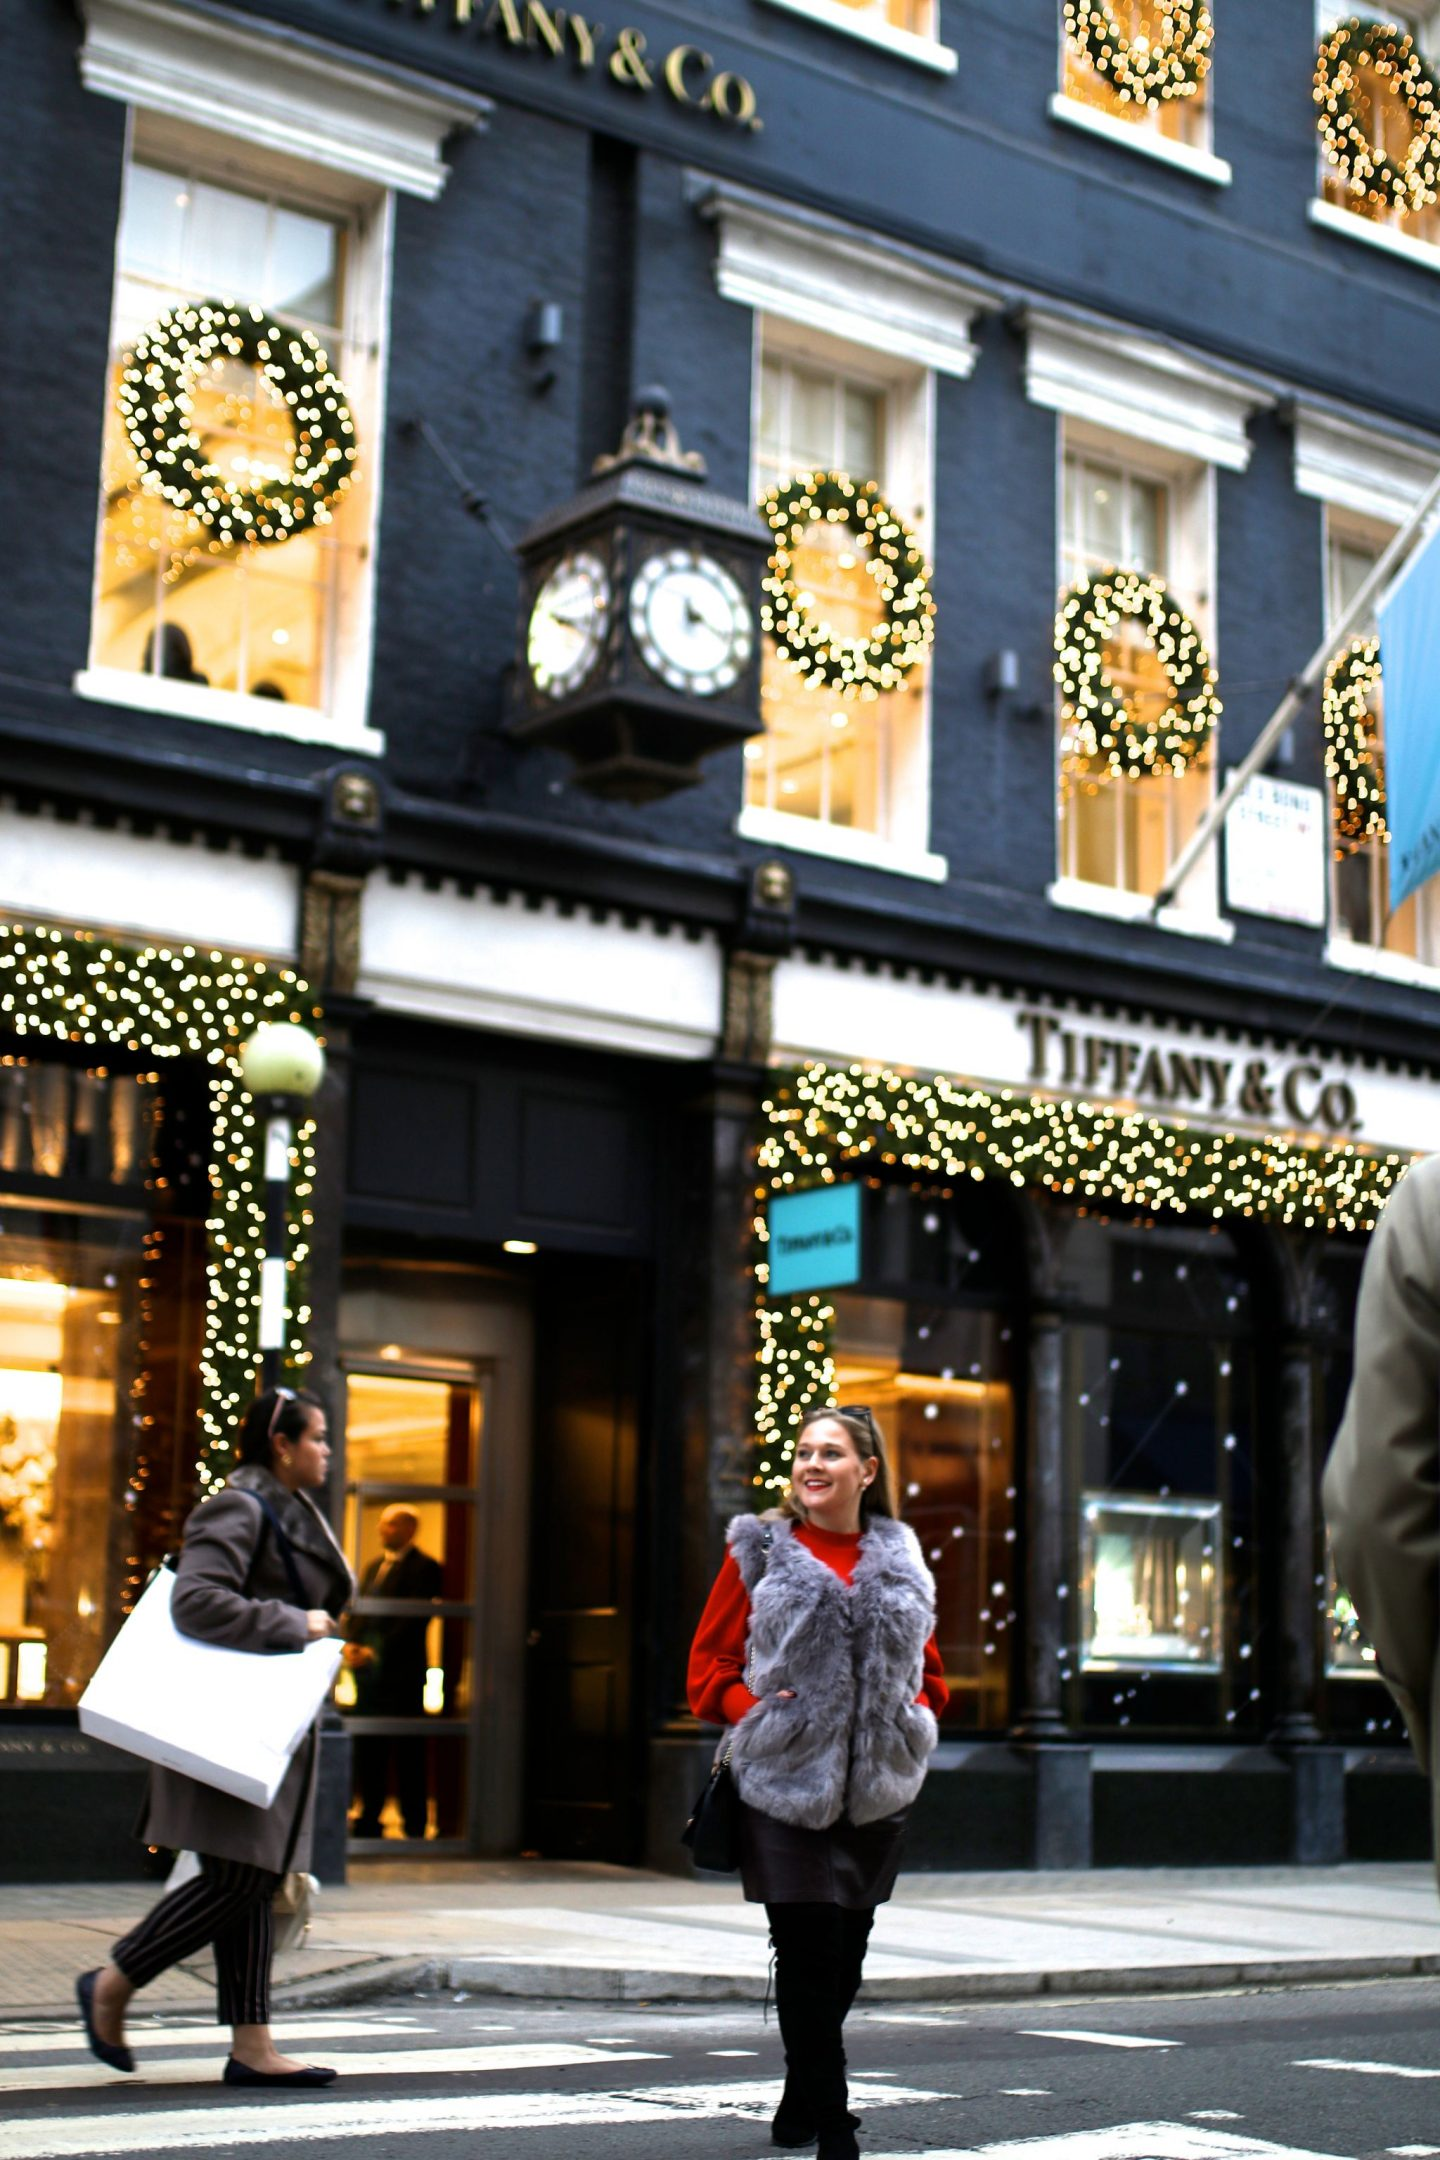 Old Bond Street, Katie KALANCHOE Instagram Guide to Christmas in London